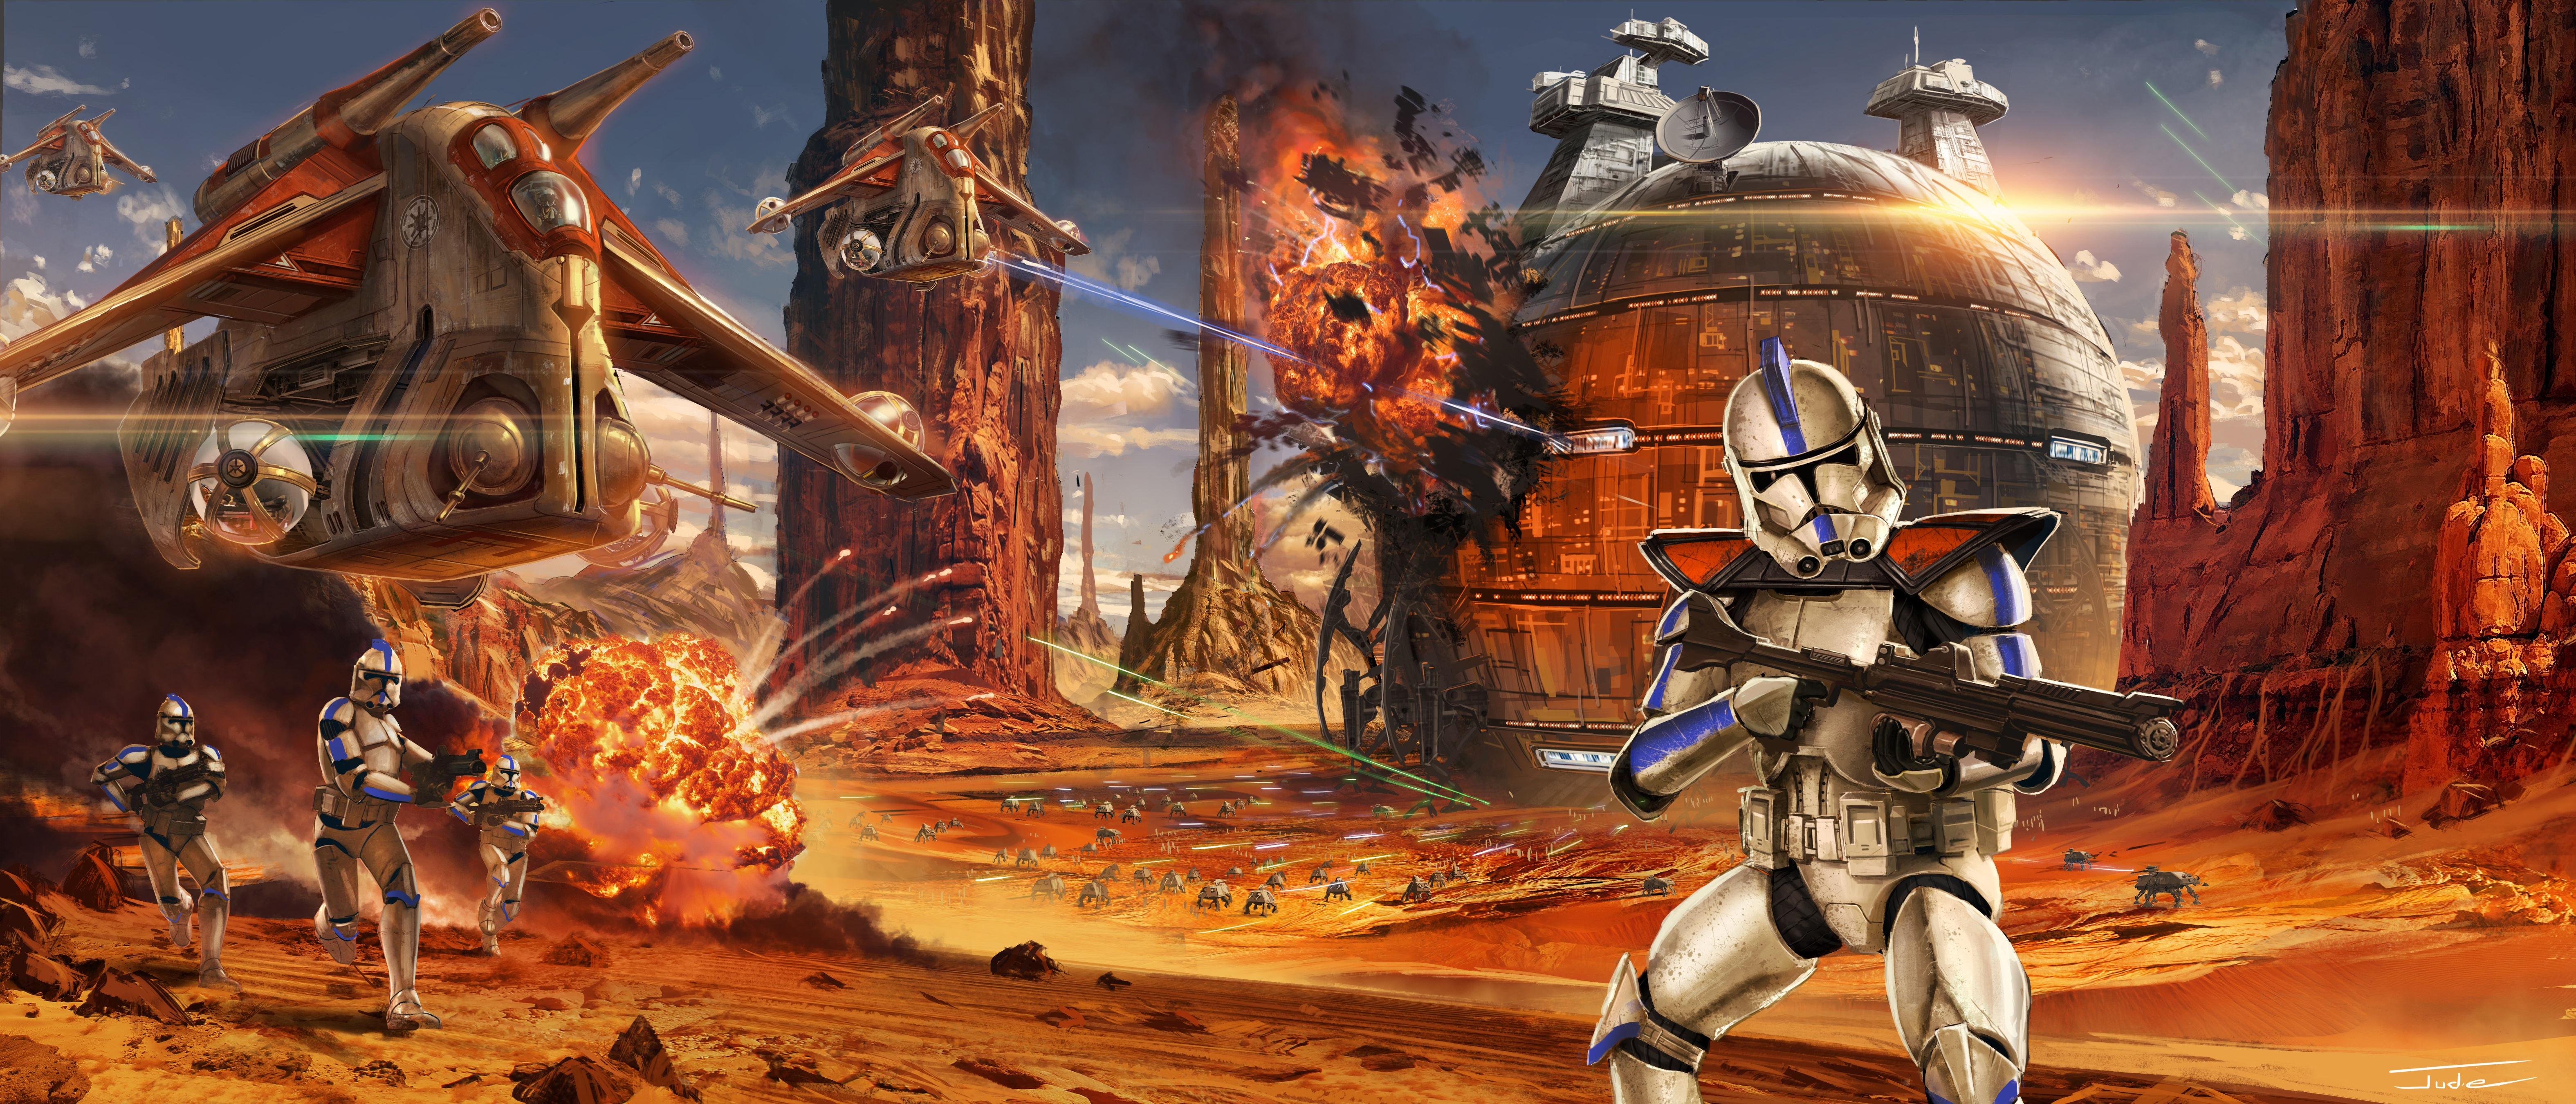 46 Clone Trooper Hd Wallpapers Background Images Wallpaper Abyss